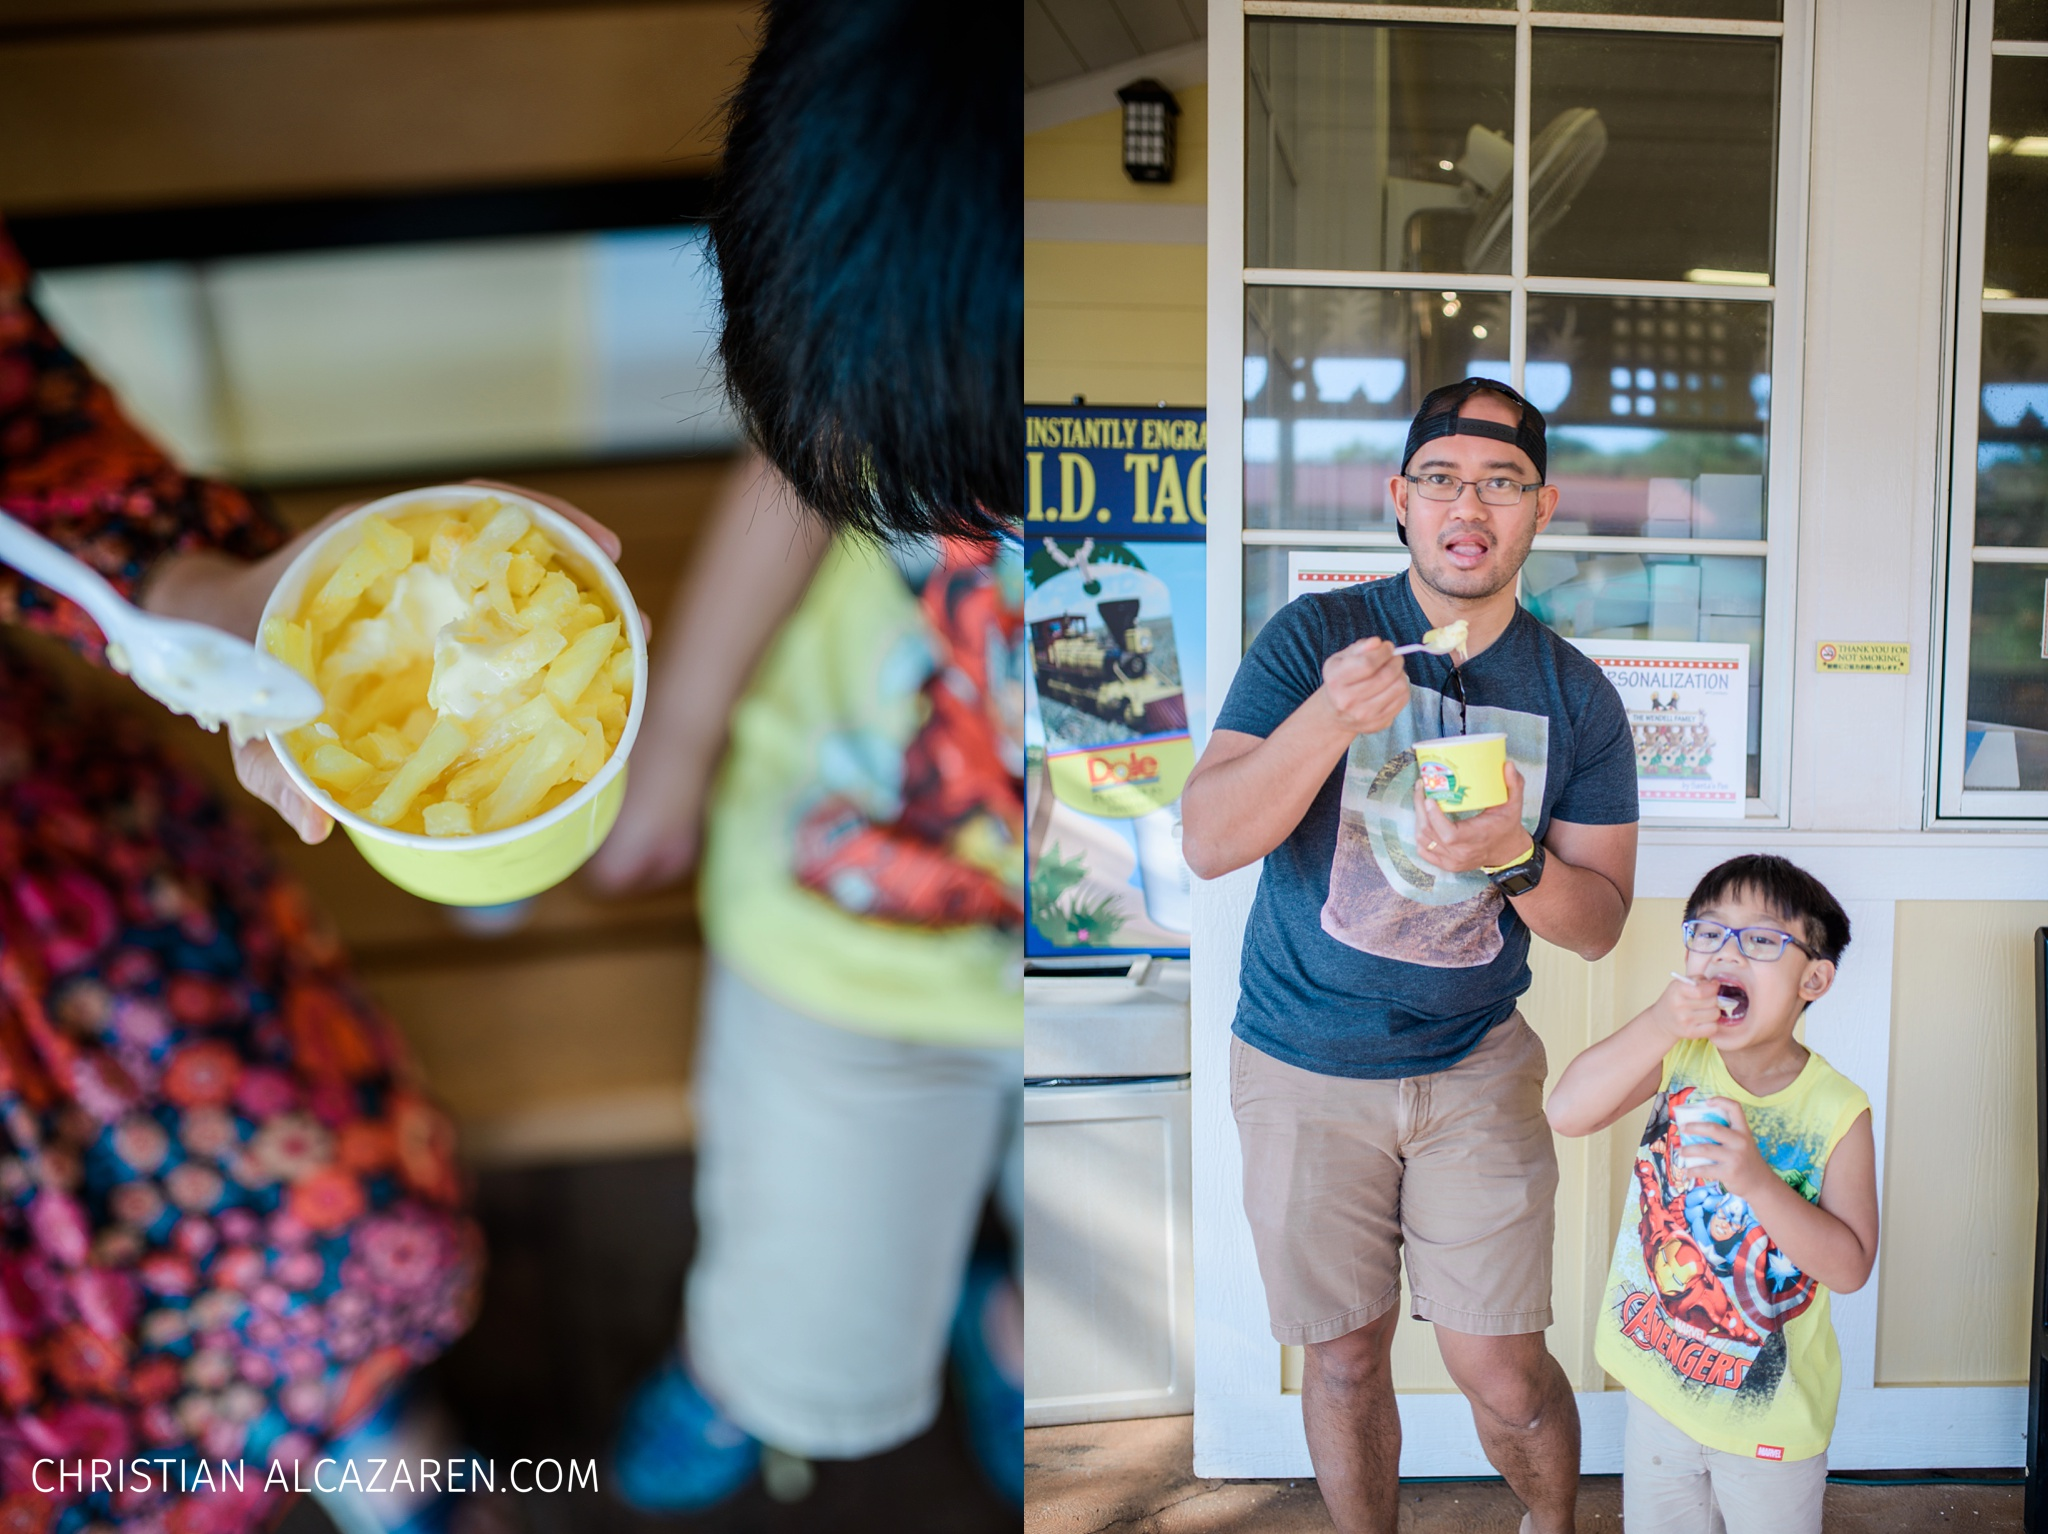 We are twinning when it comes to food trip. The pineapple whip was a fun experience